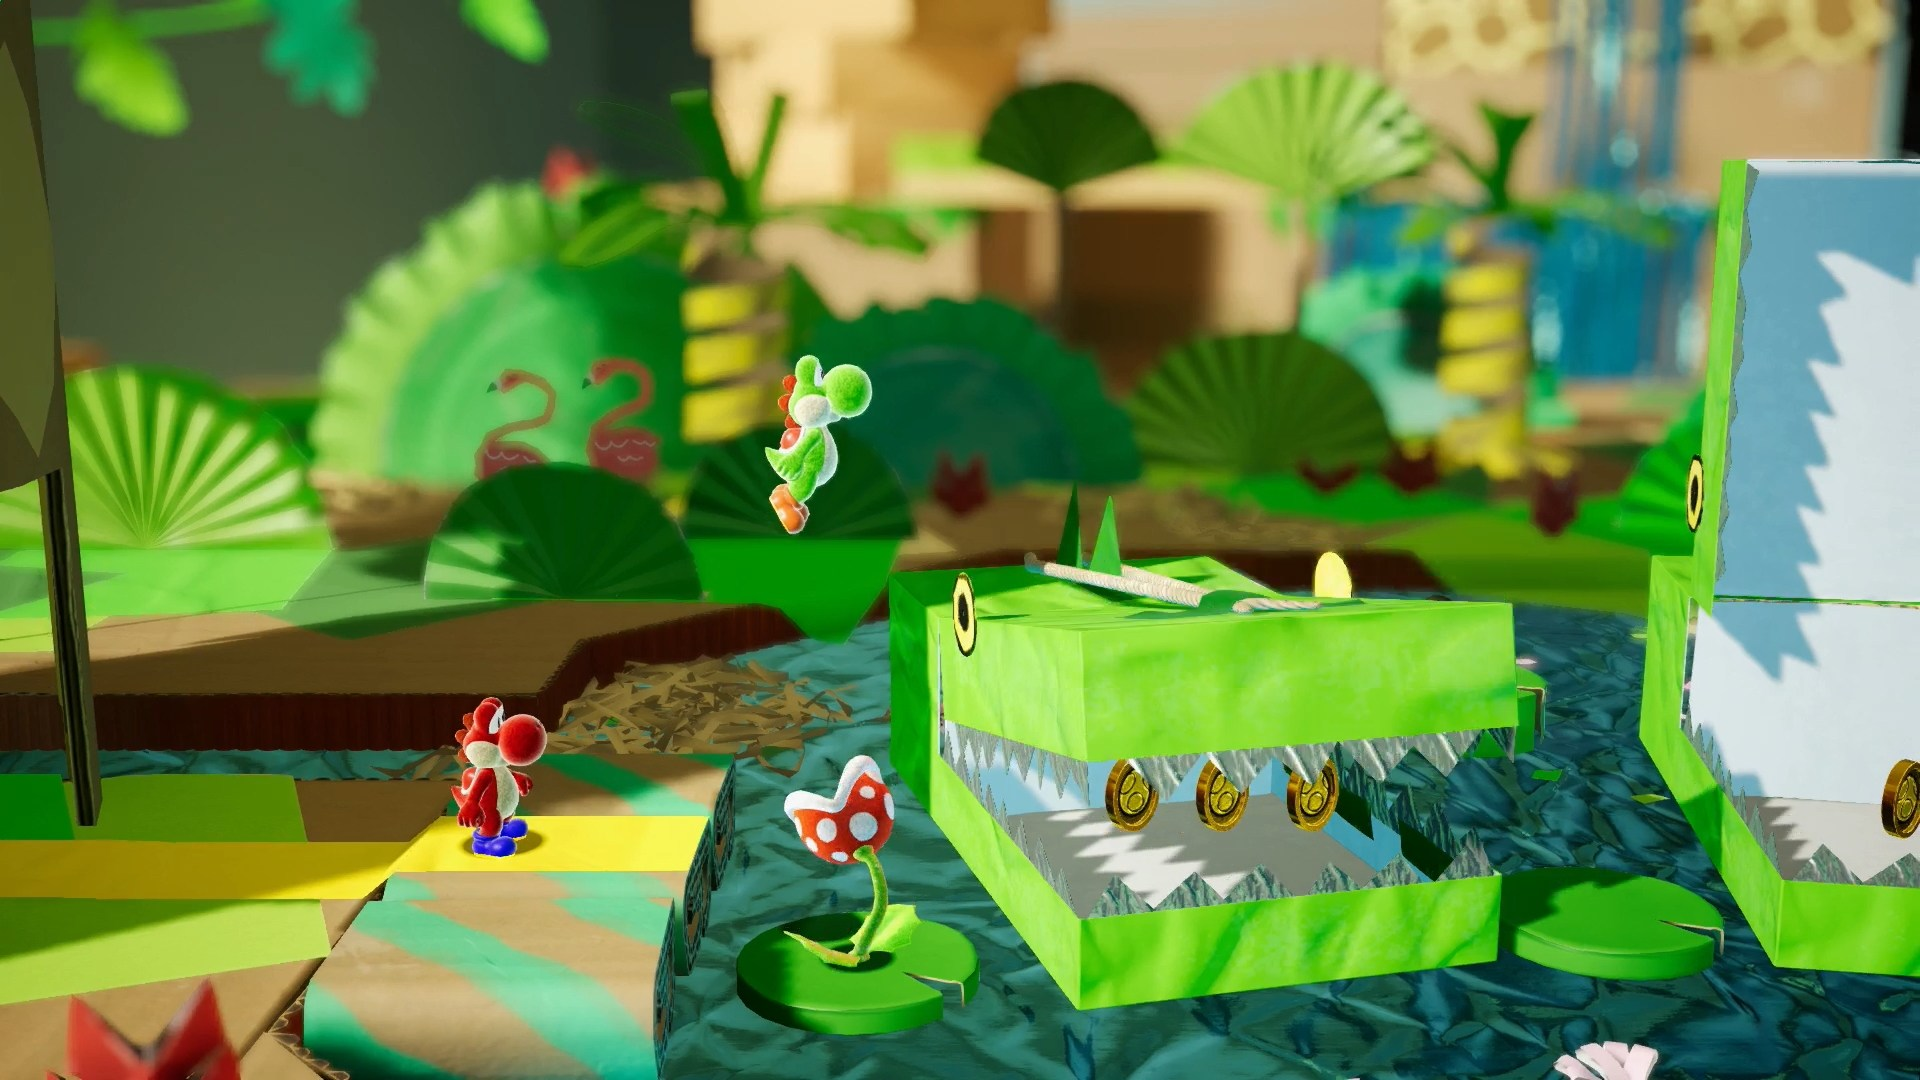 Yoshi for Nintendo Switch missed E3 but it's still happening screenshot